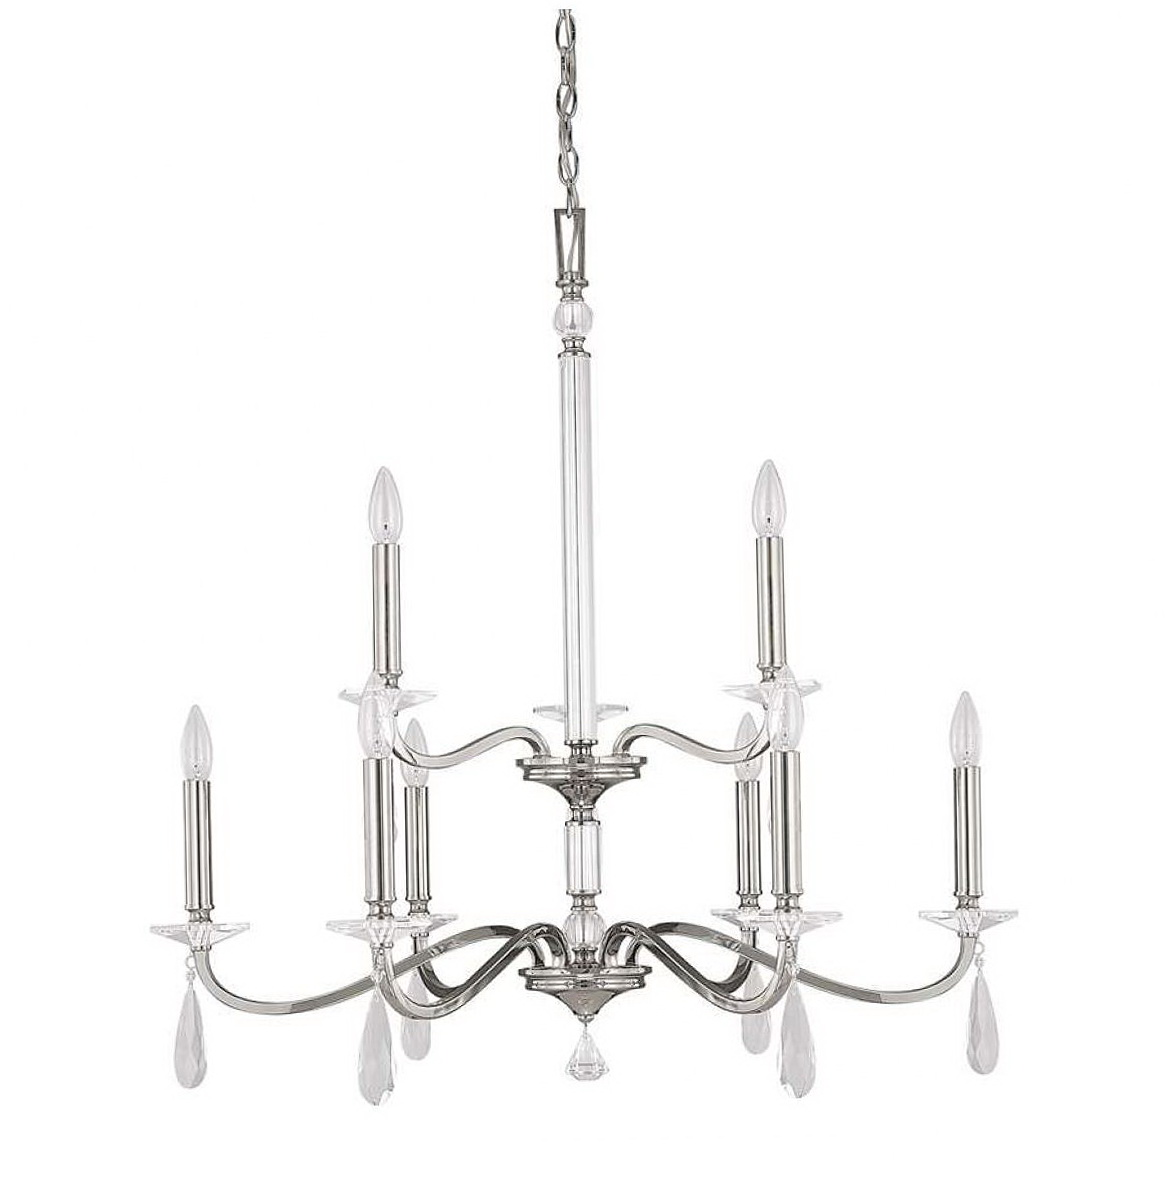 Polished Nickel Crystal Chandelier